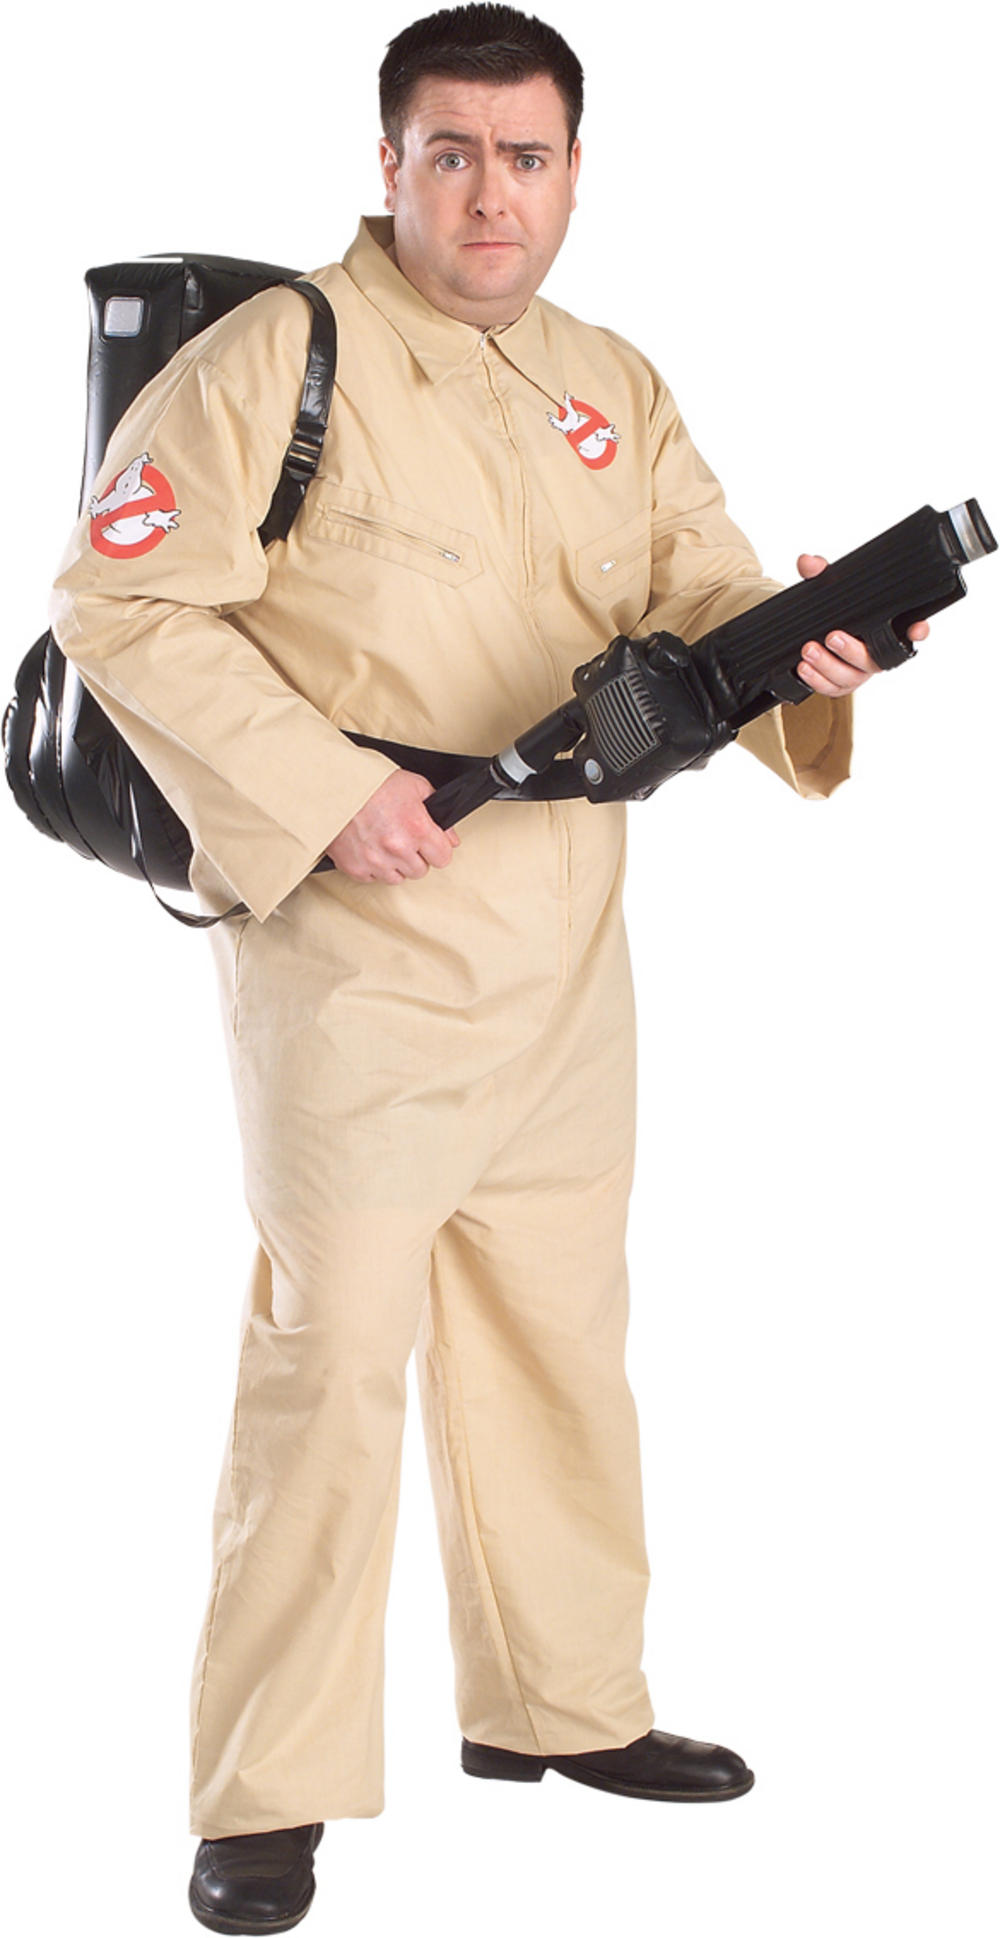 Ghostbusters Costume (XL)